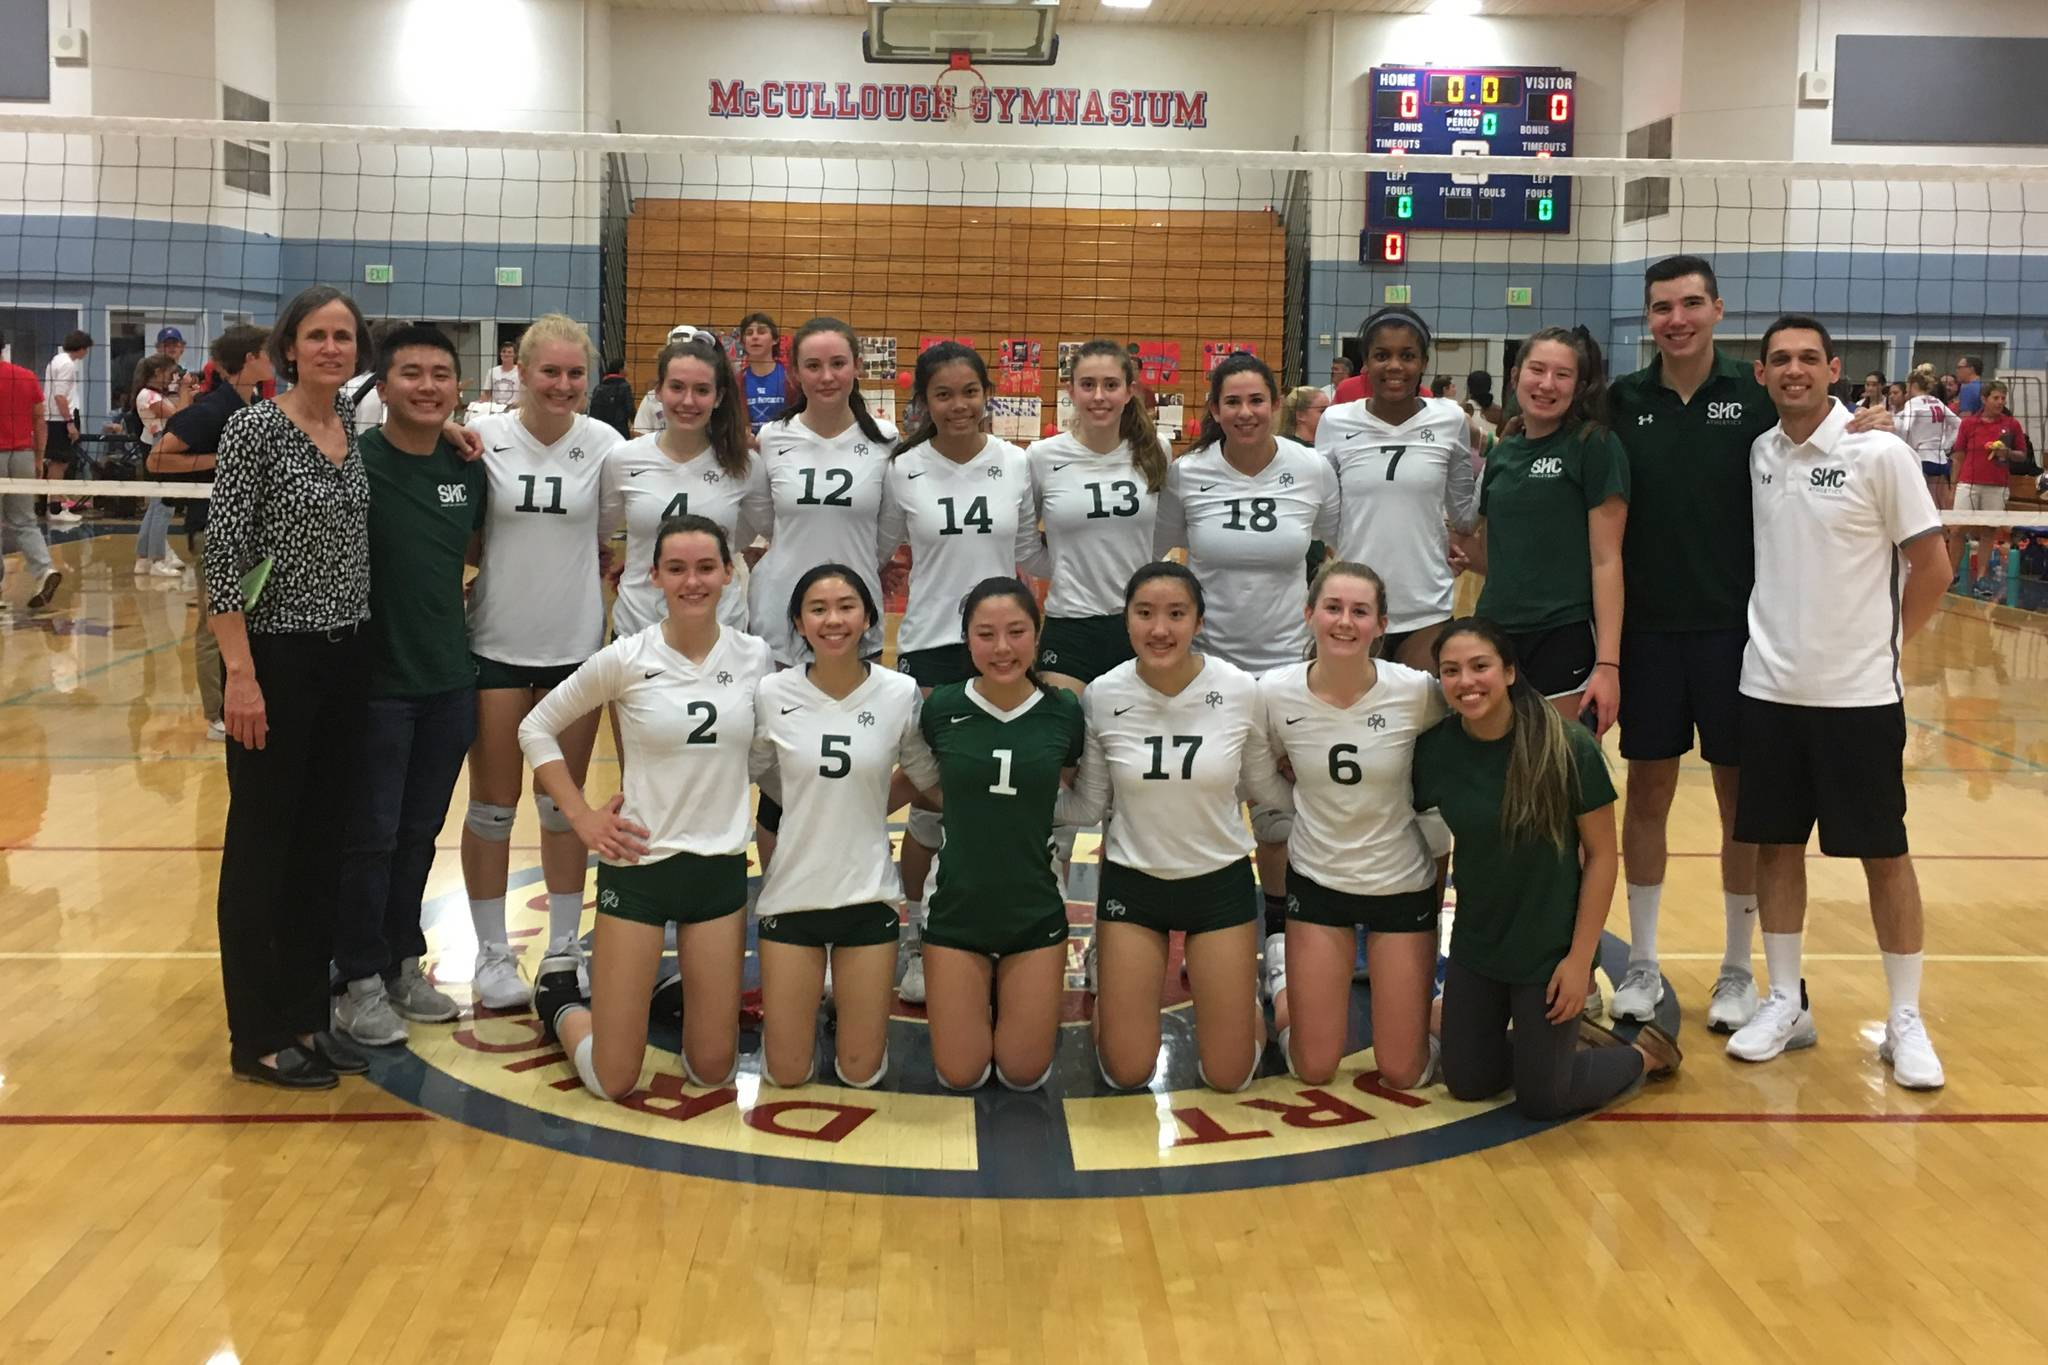 The Sacred Heart Cathedral girls' volleyball team celebrates its second straight West Catholic Athletic League title at St. Ignatius's McCullough Gymnasium in San Francisco on Oct. 24, 2019. (Courtesy / Sacred Heart Cathedral Athletics)